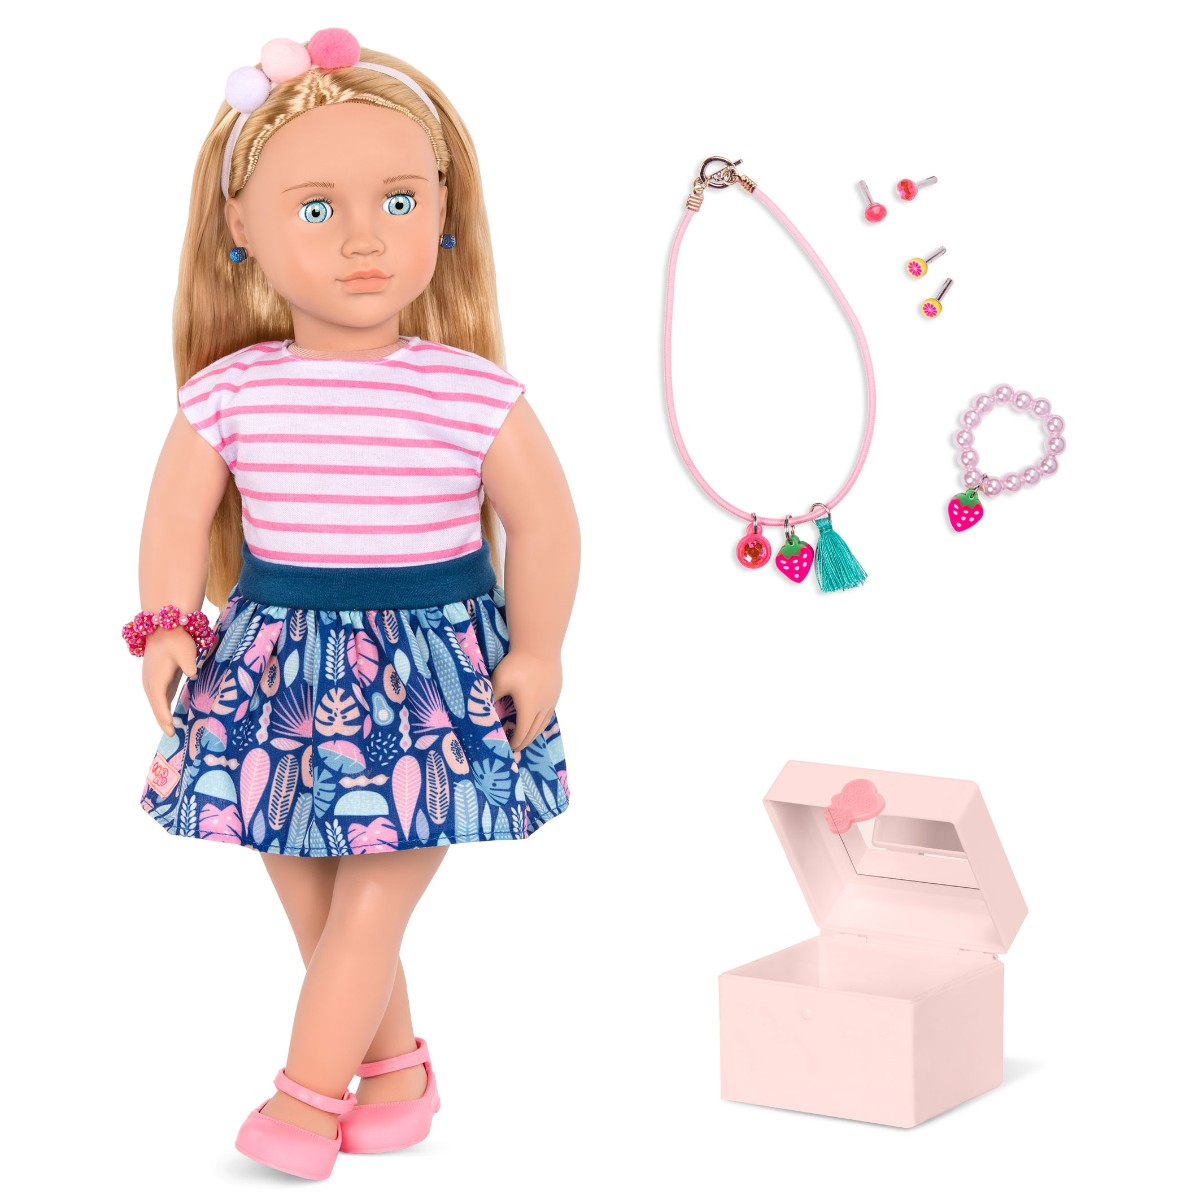 Our Generation - Alessia jewelry doll (731262)